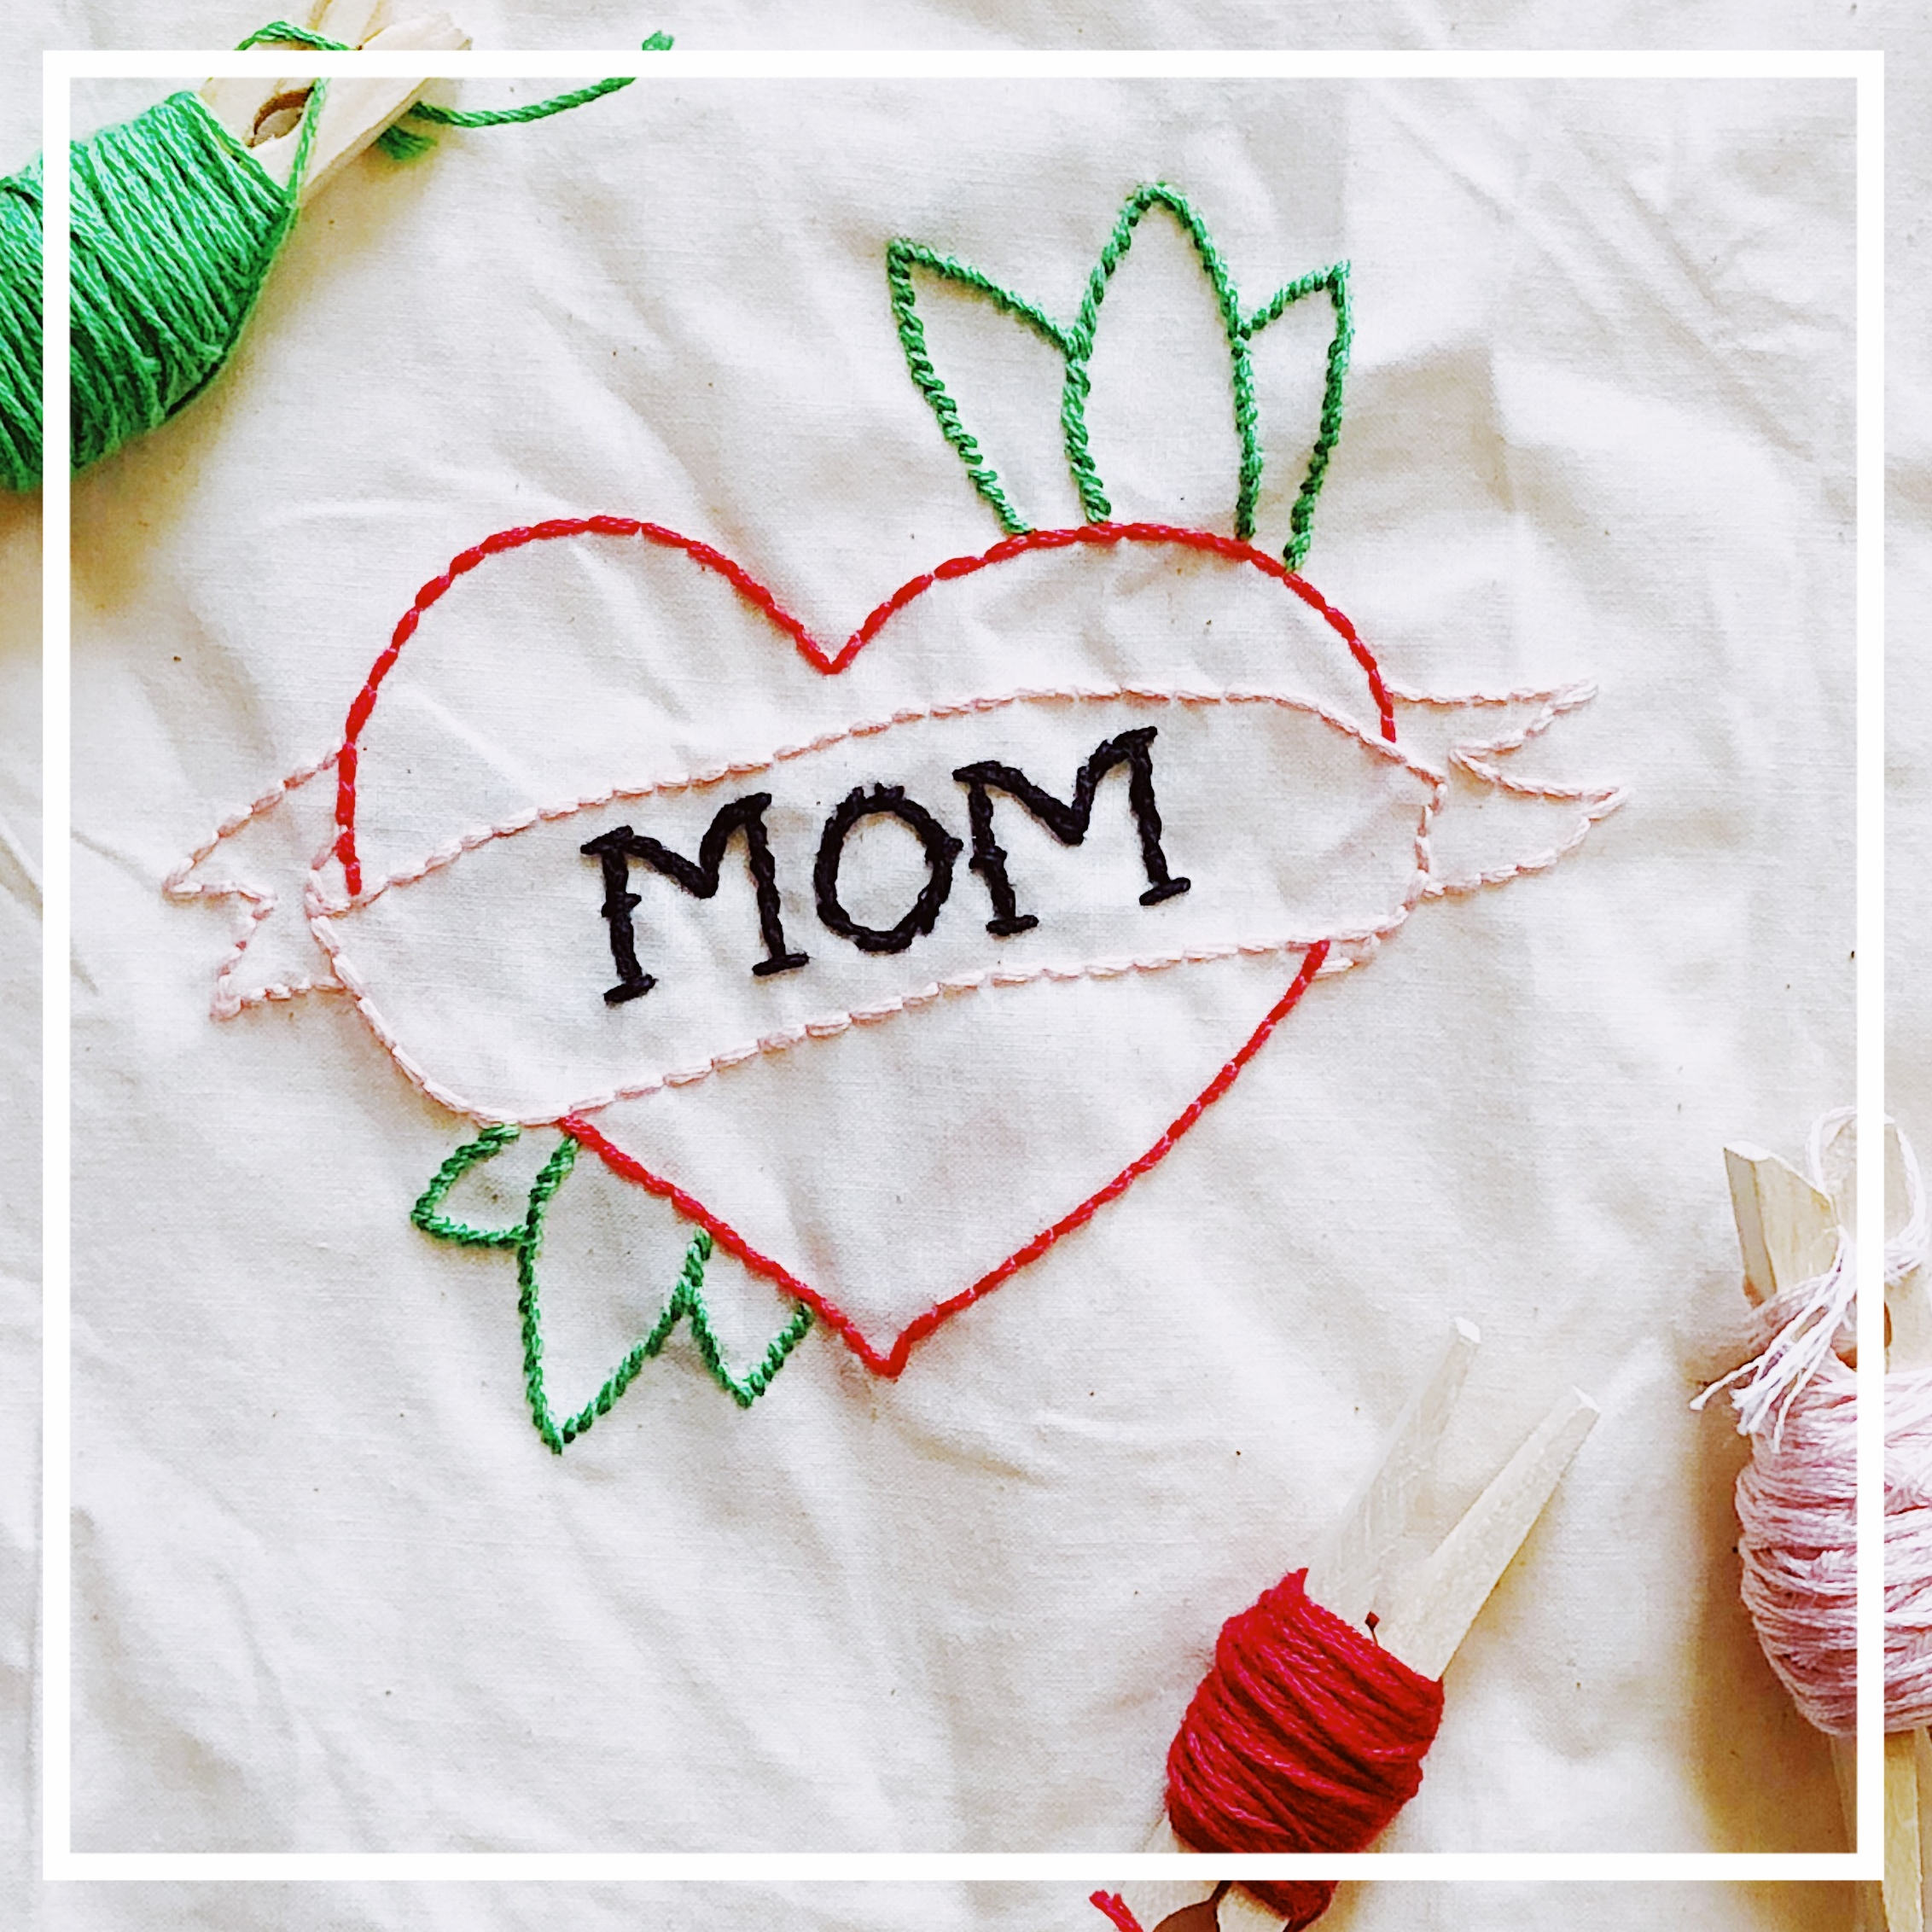 mom_embroidery2.JPG